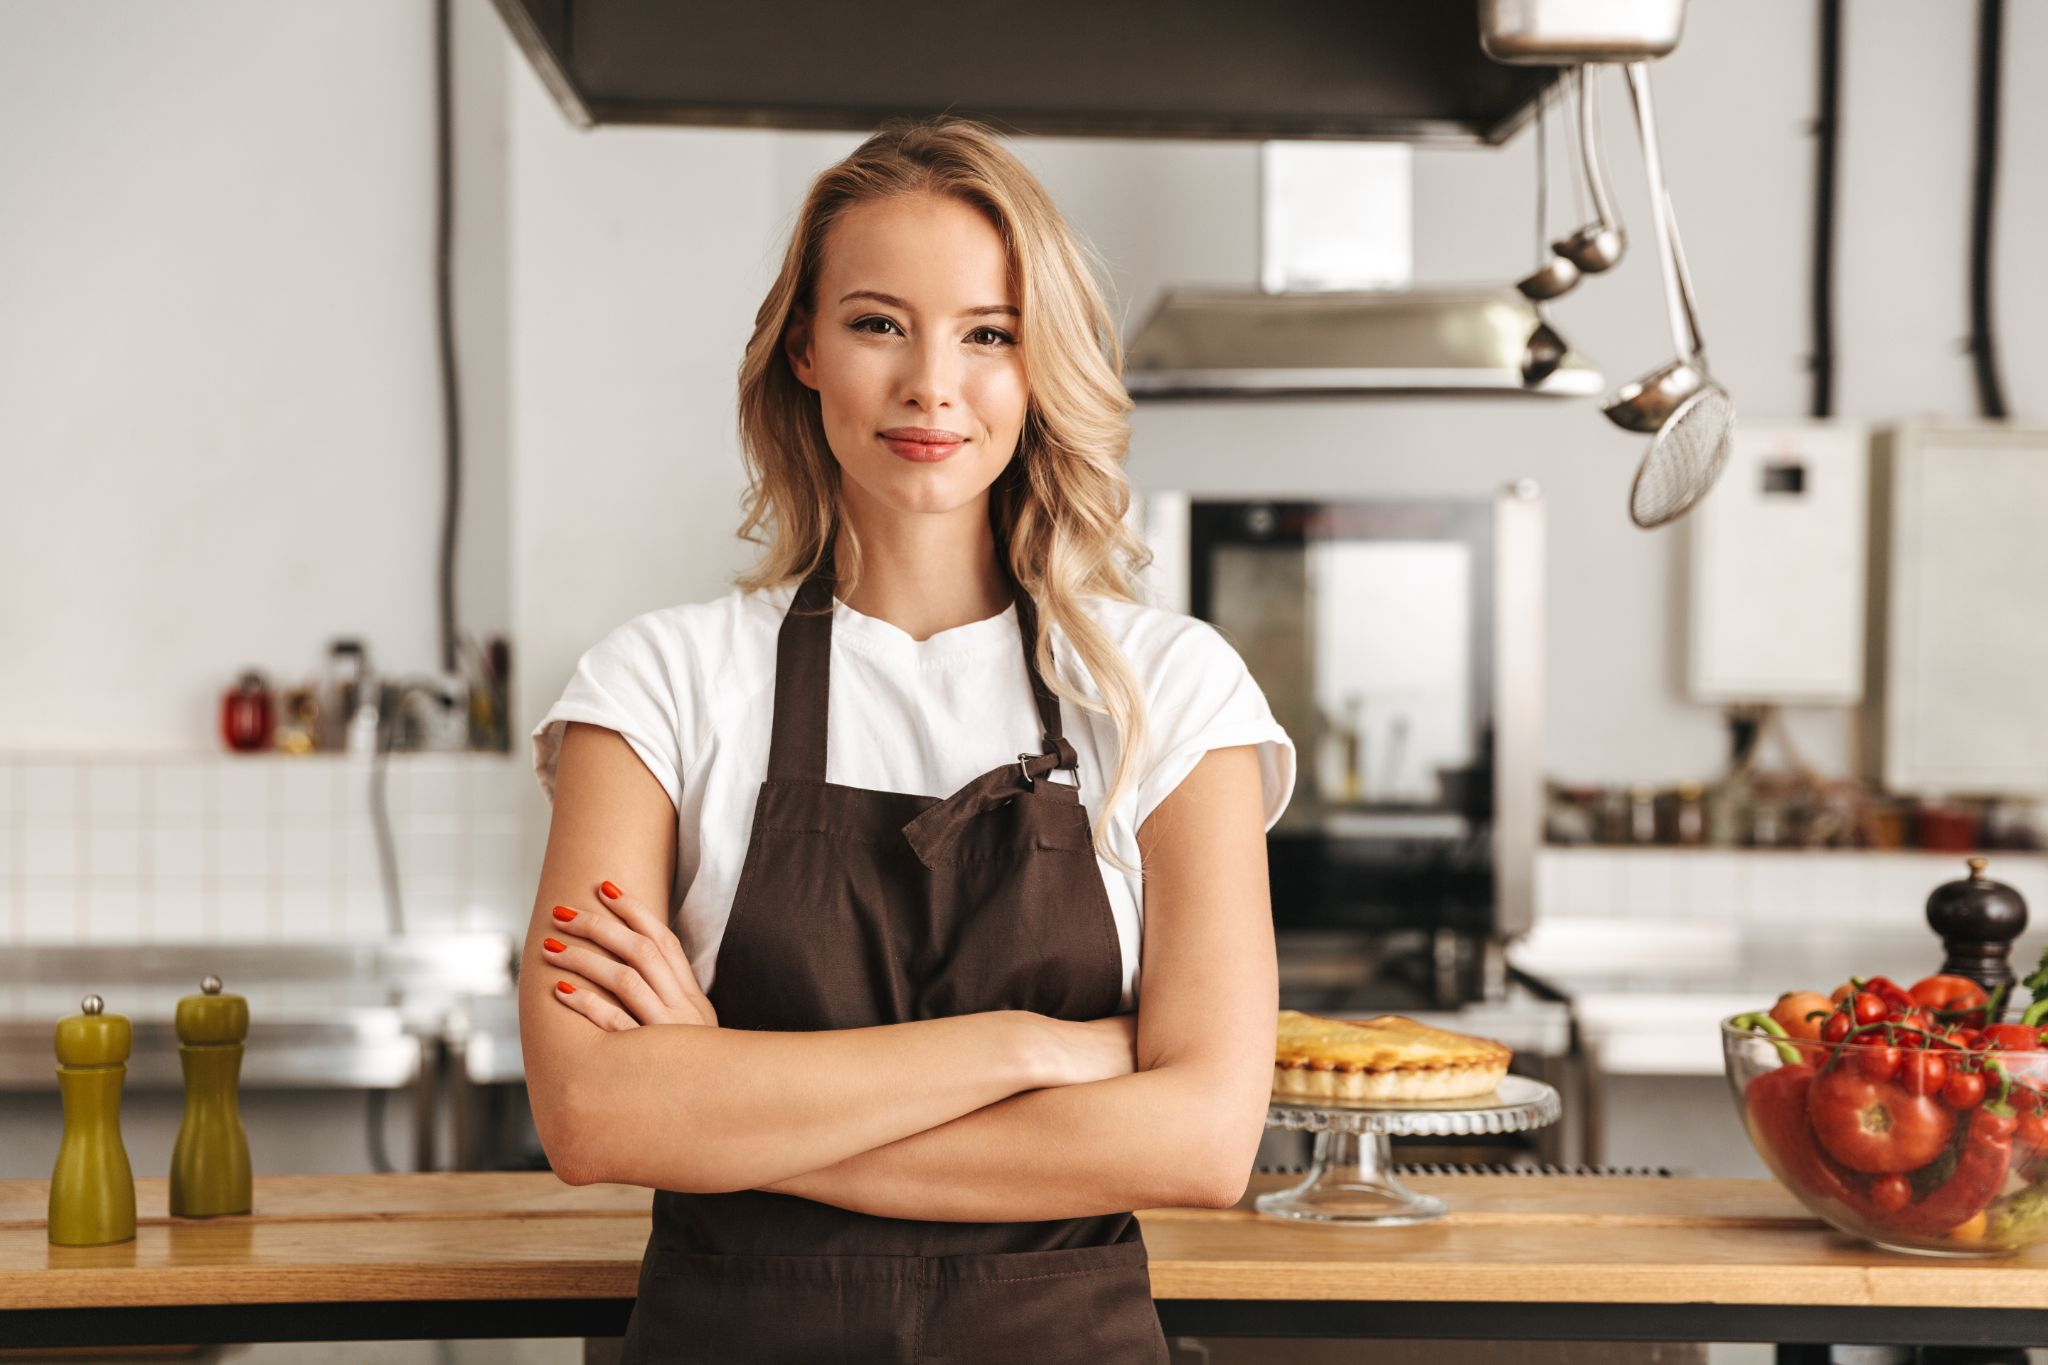 Smiling young woman chef in apron standing at the kitchen